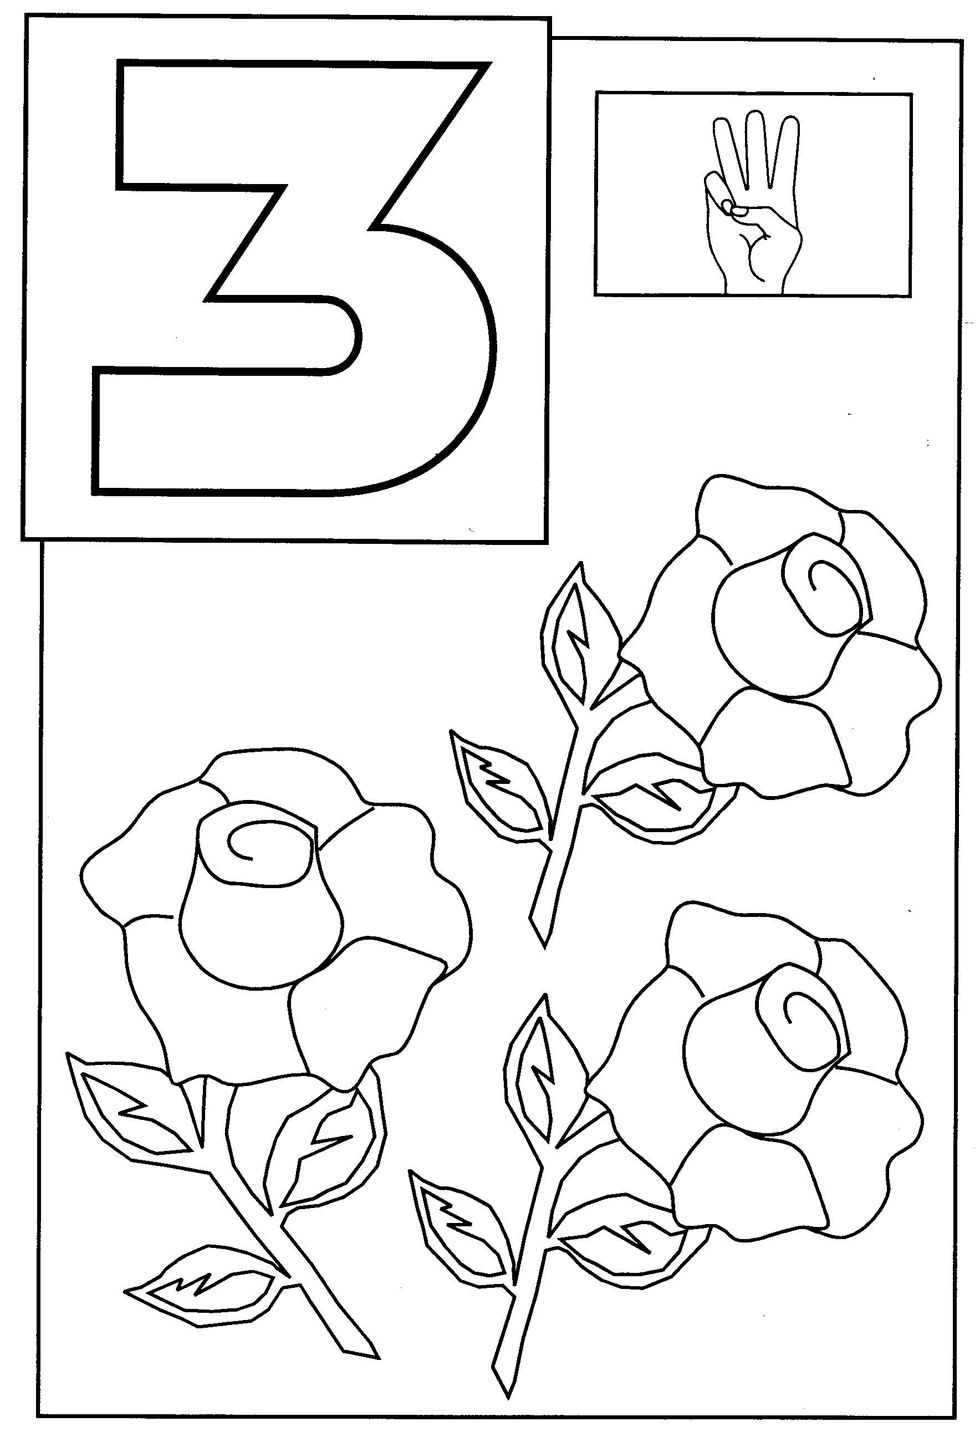 coloring sheets with numbers free printable color by number coloring pages best numbers with sheets coloring